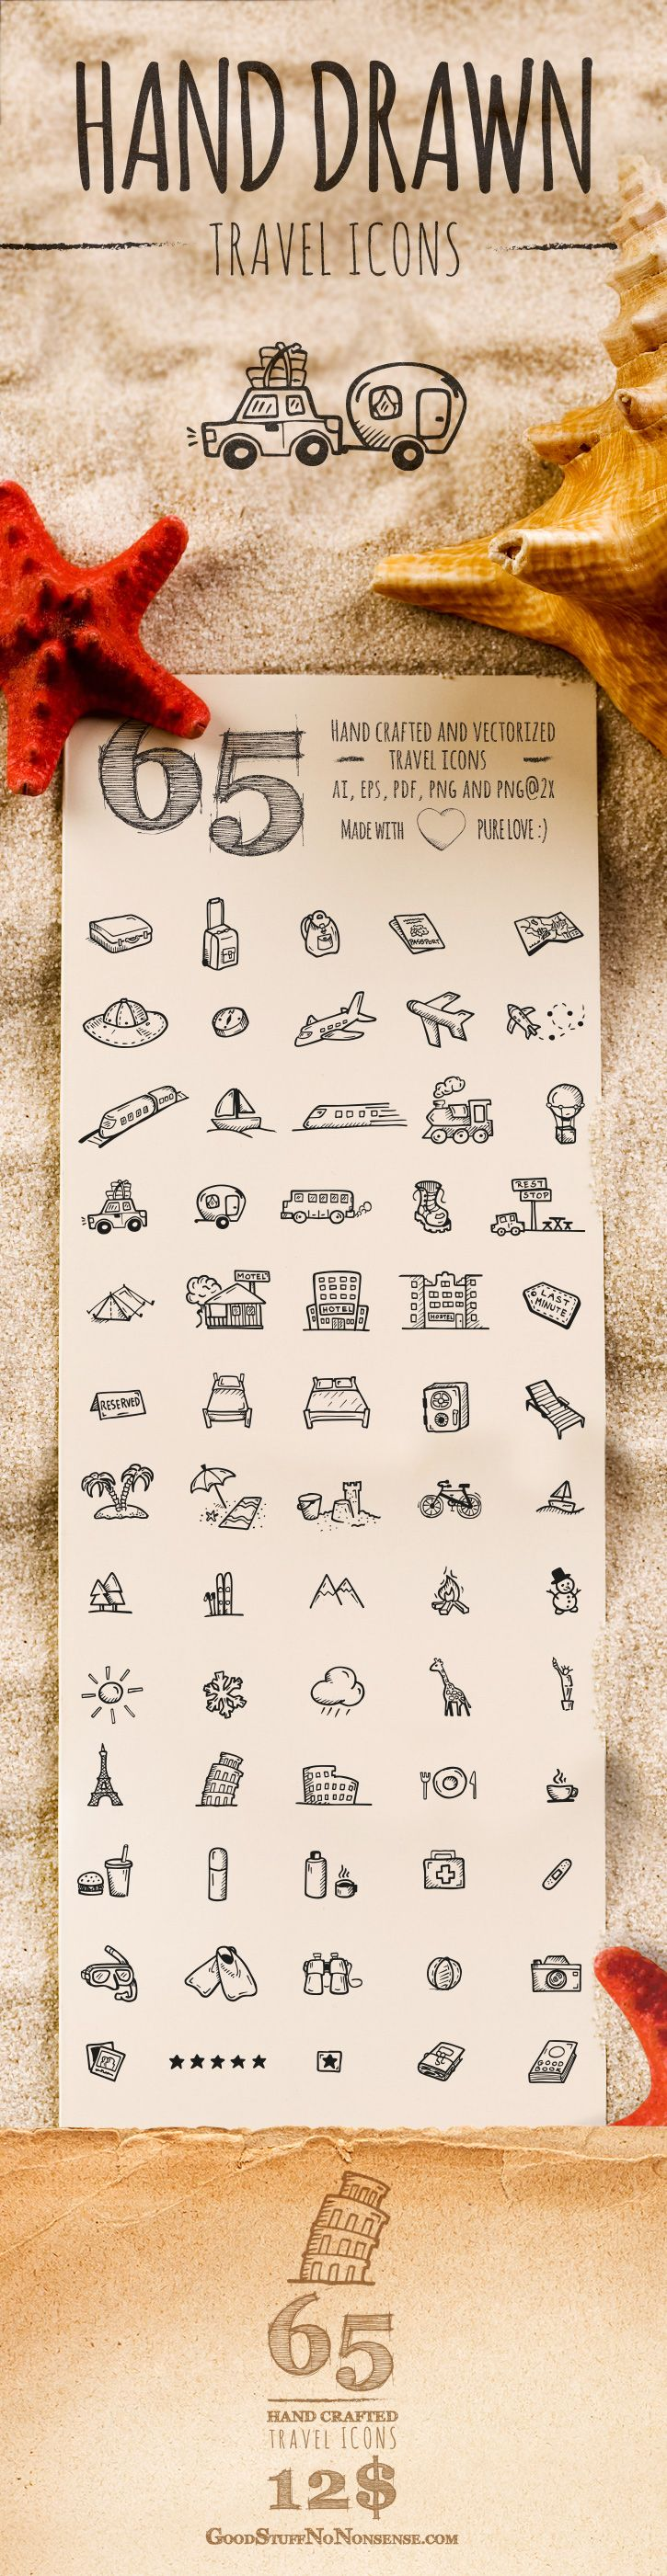 65 Travel Icons Hand Drawn Vector Icons all about traveling and vacations. You will find there such useful transportation icons like a plane, boat, train or a car with a trailer. Or location icons like: sandy beach, forest, mountains or even a tropic island. There are also some memorable landmarks icons like: an Eiffel Tower or Statue of Liberty.